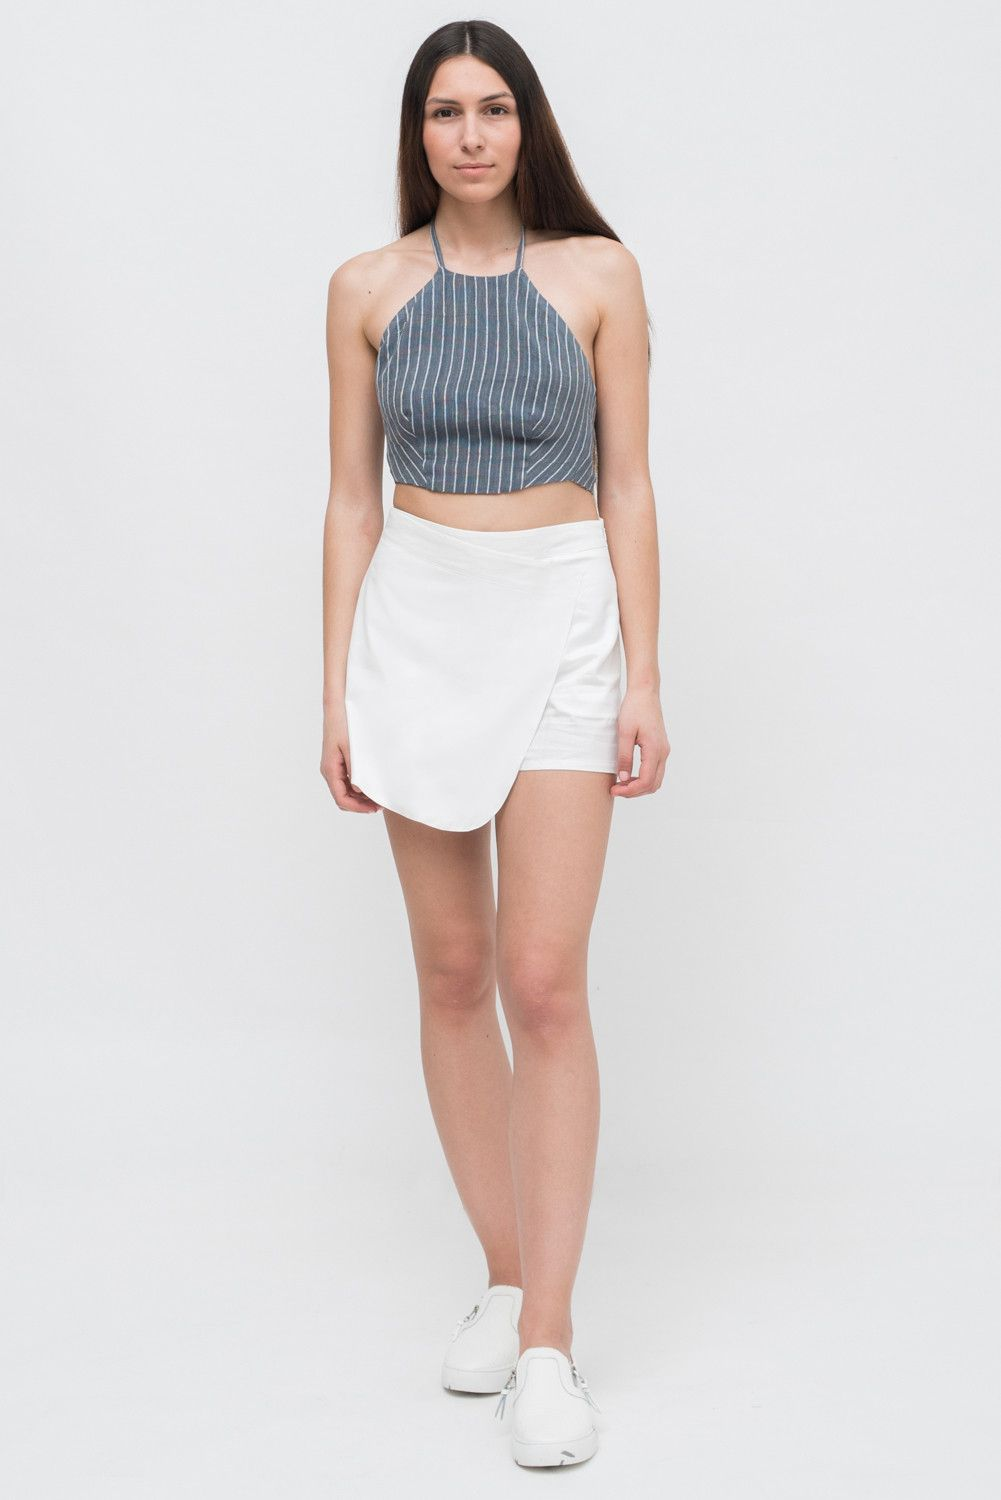 WRAP CROP TOP from Ozon Boutique